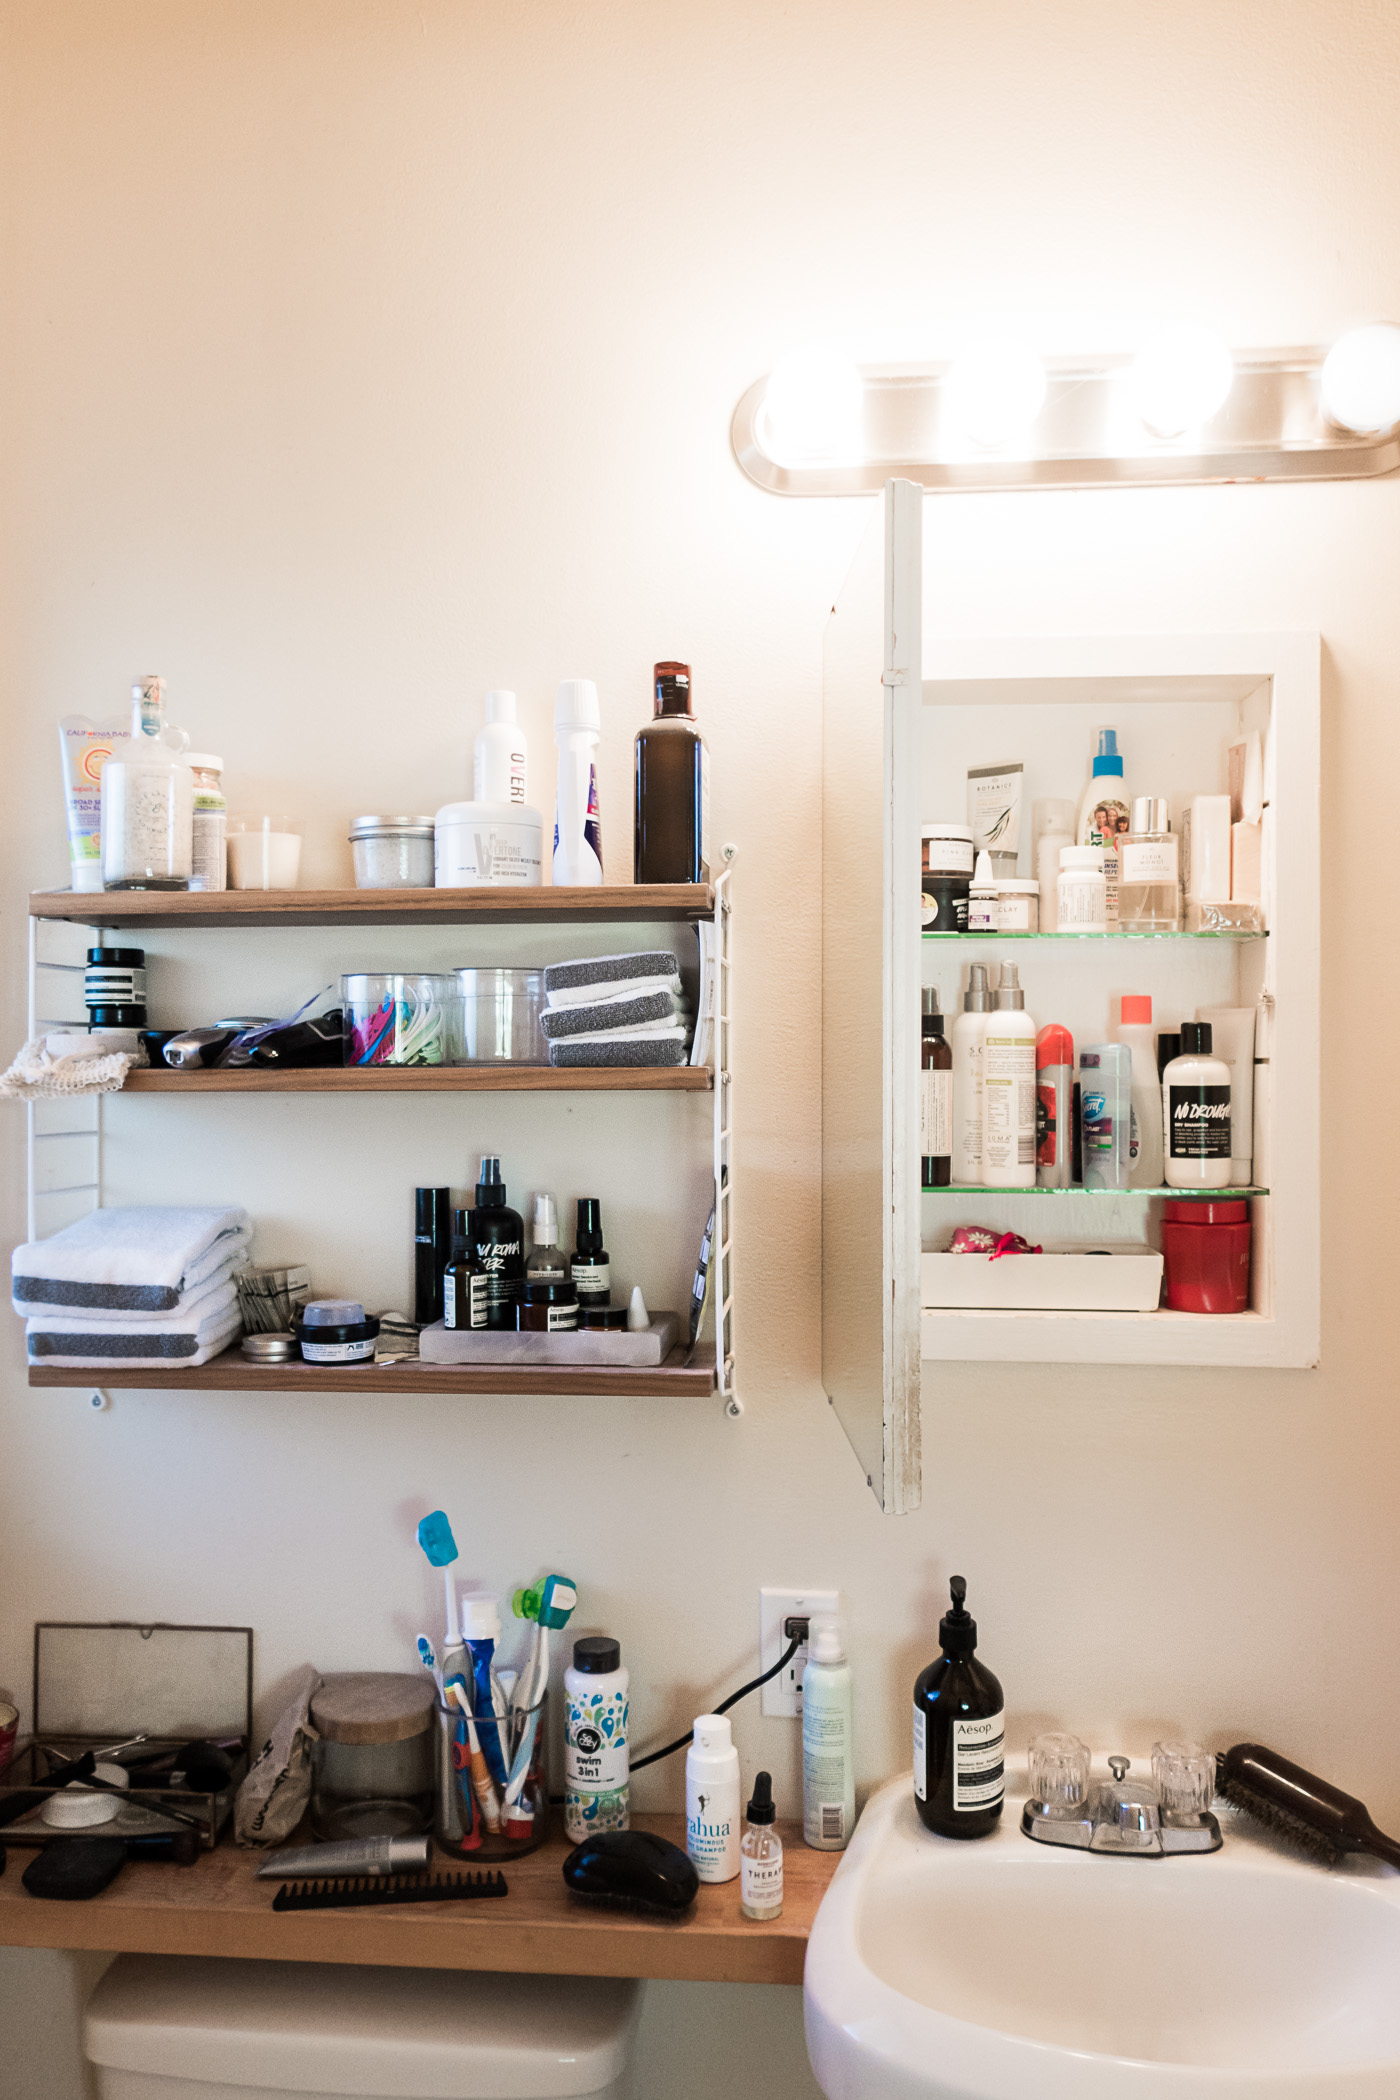 20 Small Space Bathroom Tips (Plus How I Decluttered My ... on Space Bathroom  id=66782